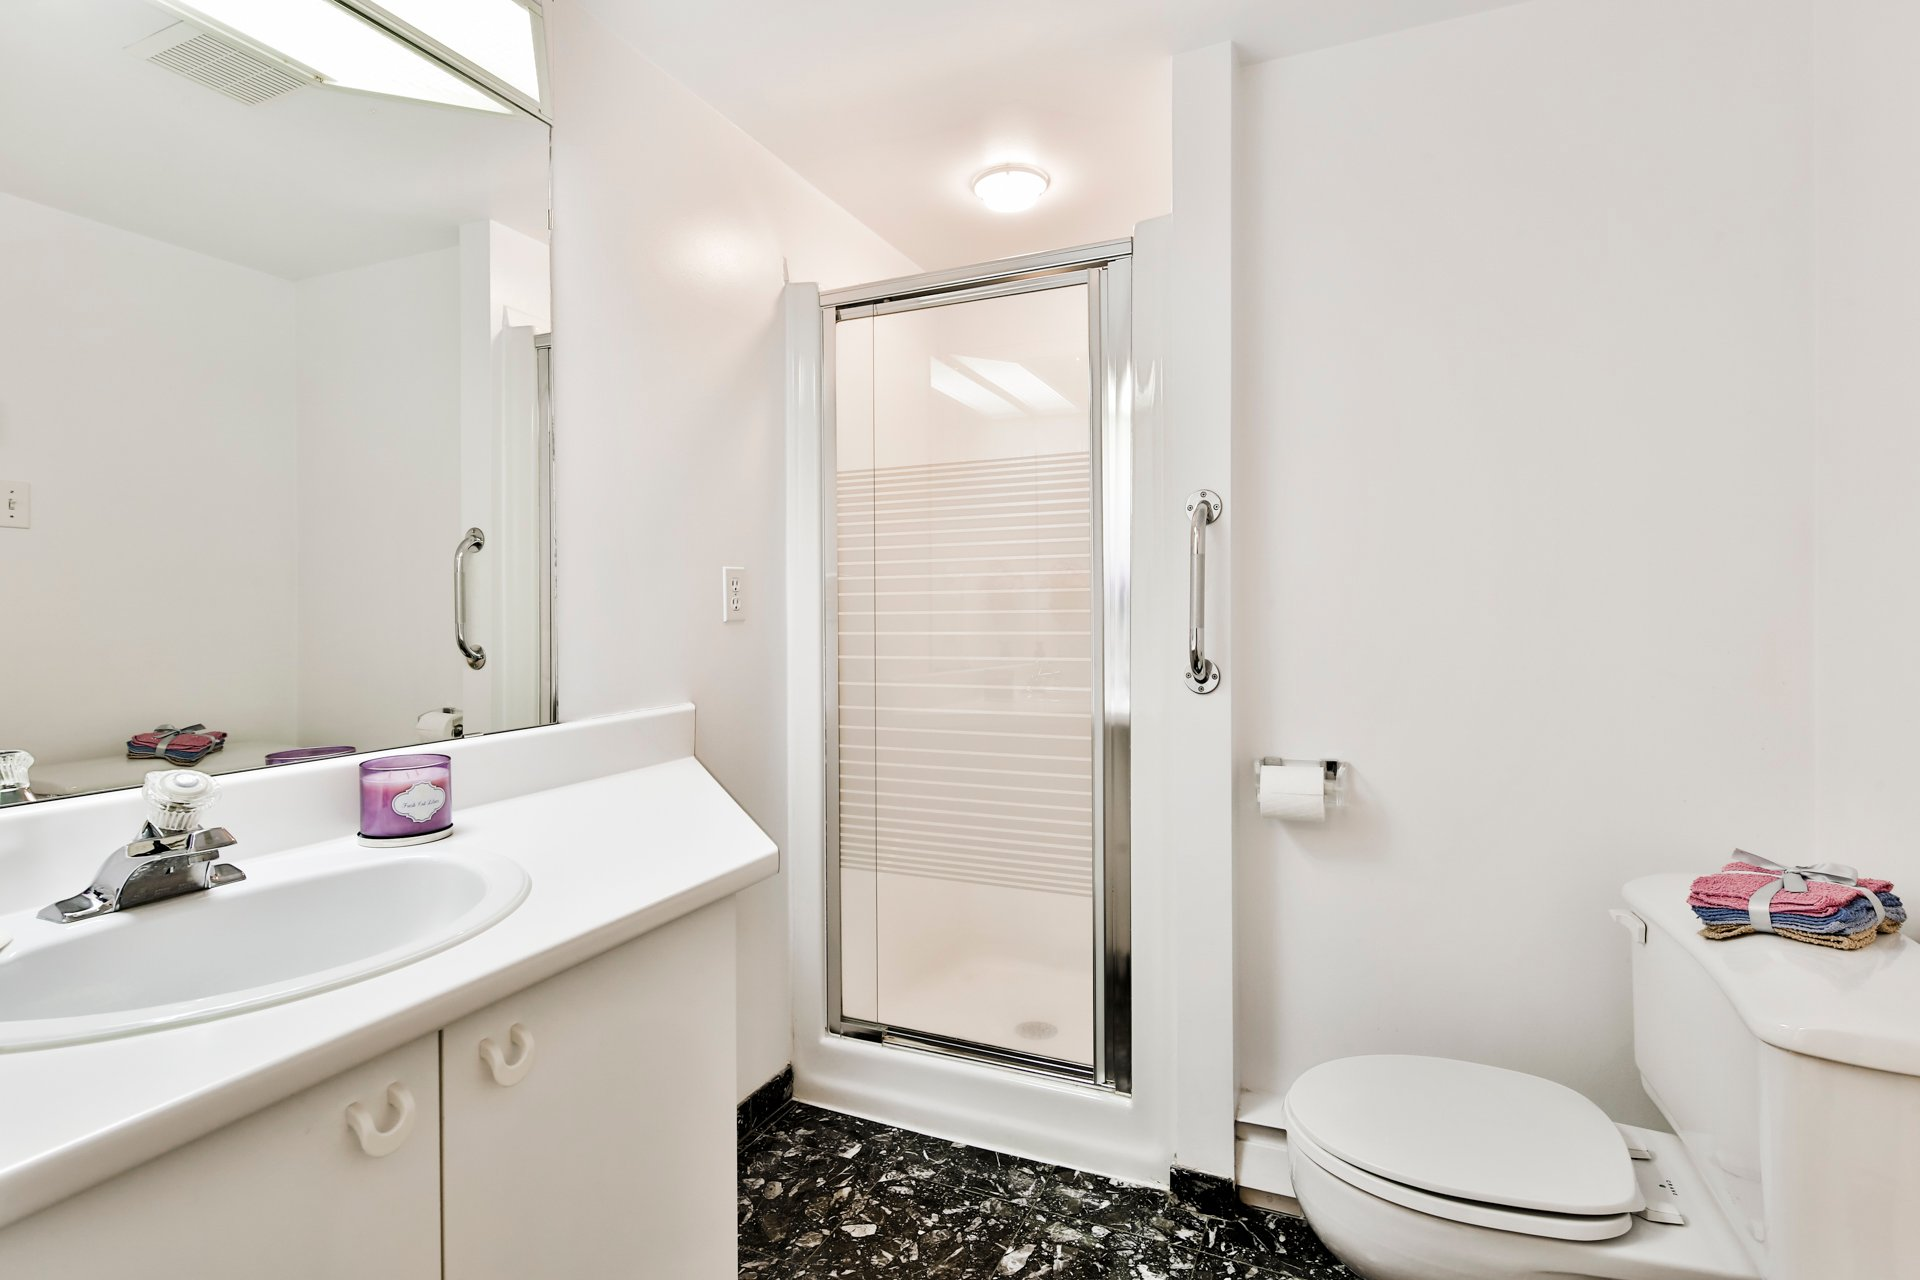 Renovation Salle De Bain Nivelles ~ Apartment For Sale Saint Laurent Montreal Buy Apartment Saint